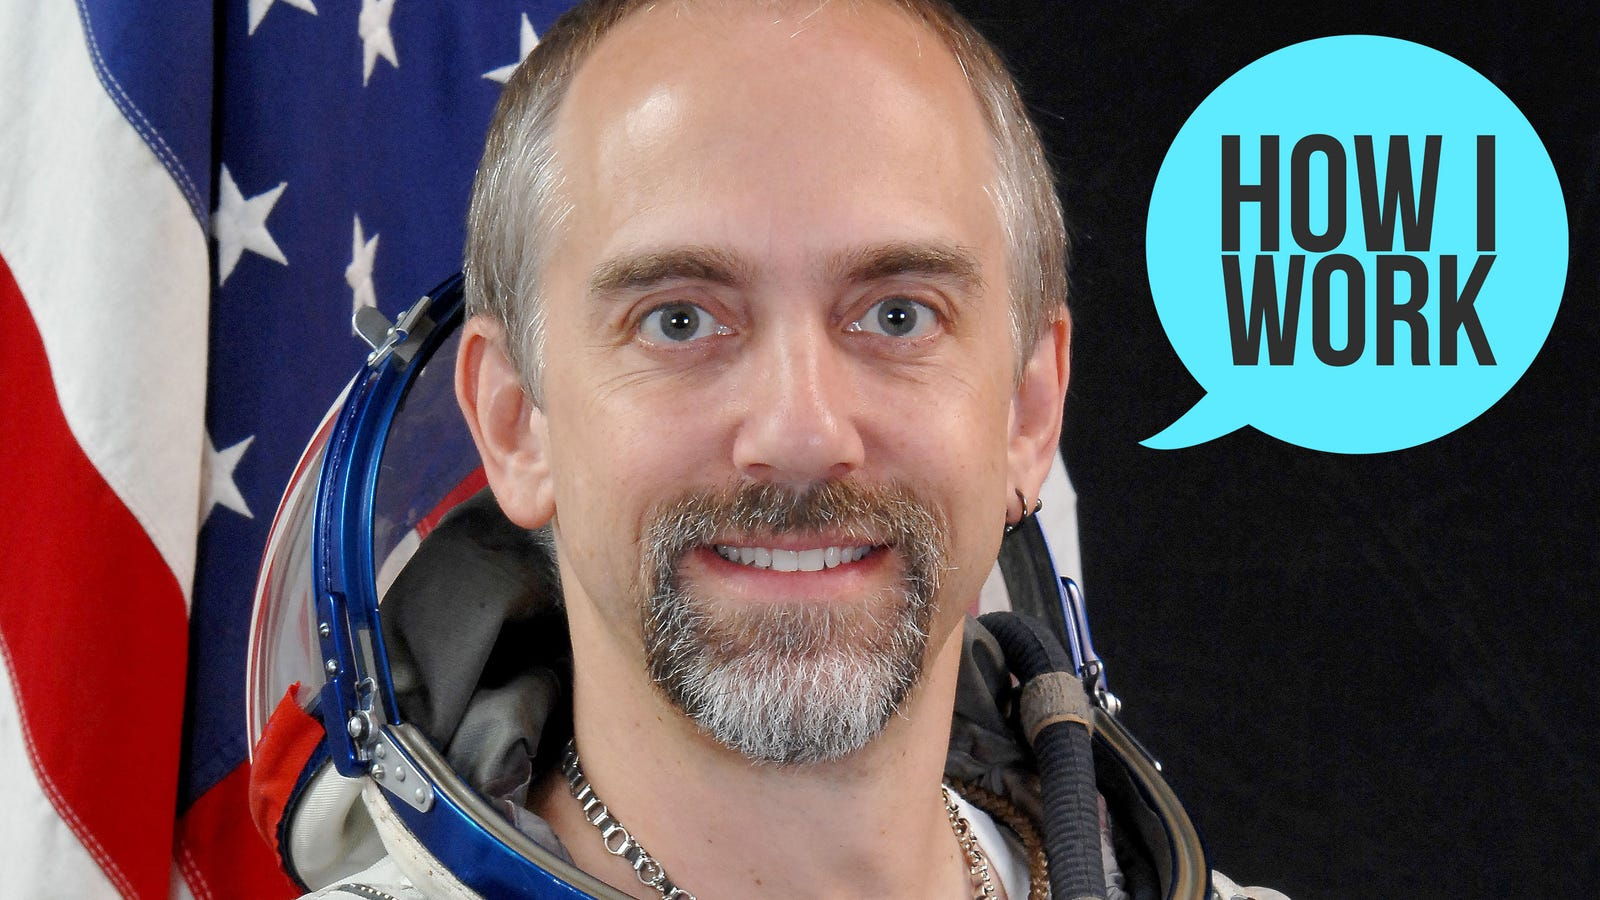 QnA VBage I'm Richard Garriott, aka Lord British, and This Is How I Work